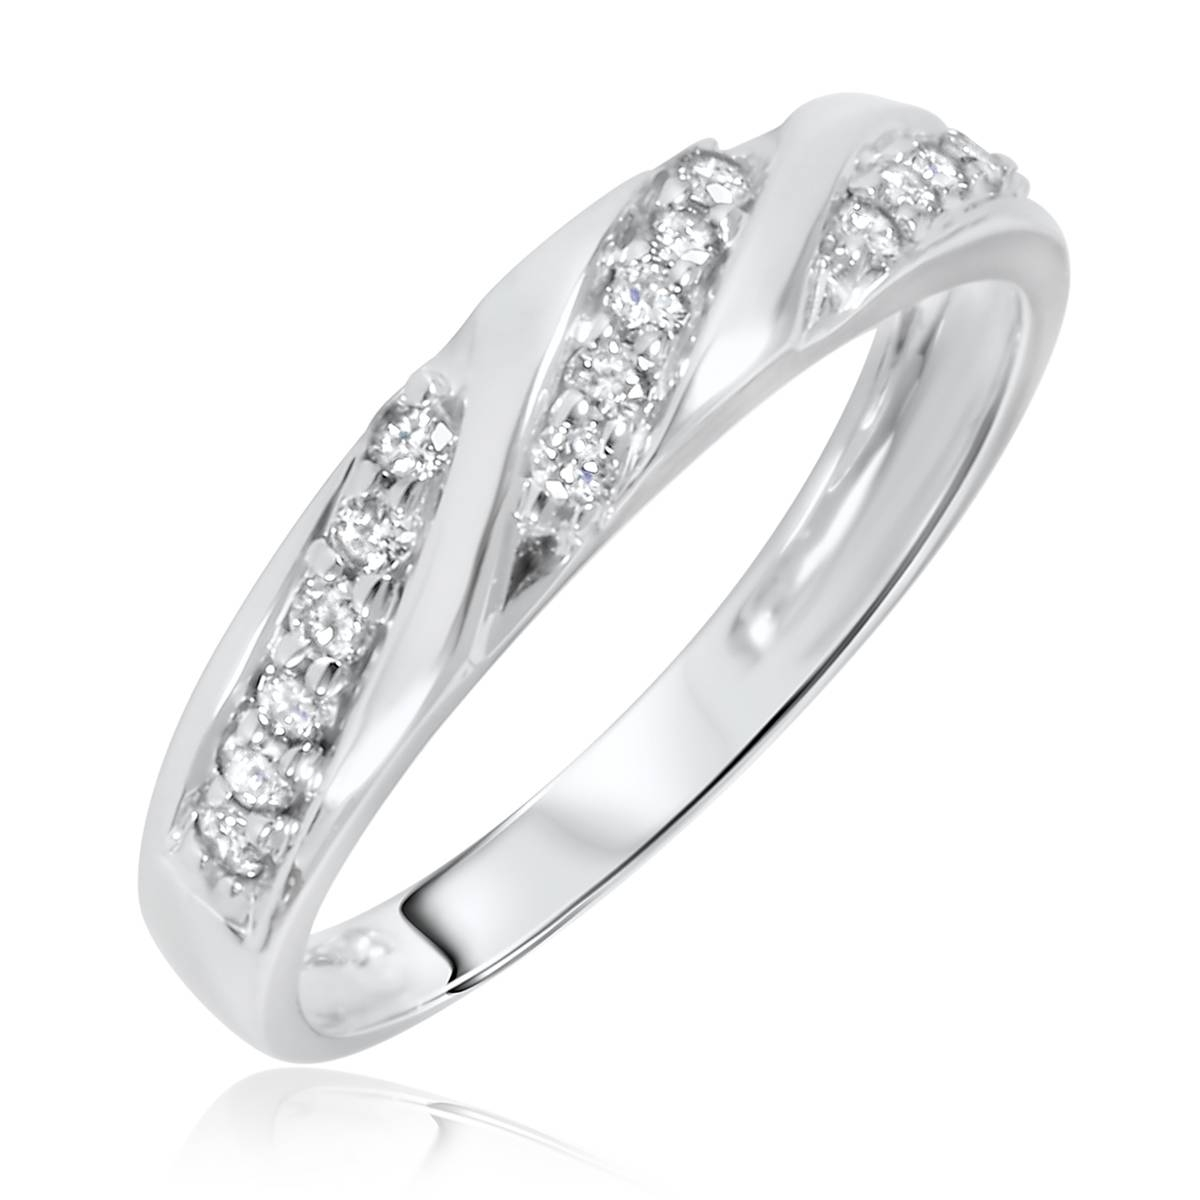 1 Carat Diamond Trio Wedding Ring Set 10K White Gold With White Gold Wedding Bands For Women (View 1 of 15)